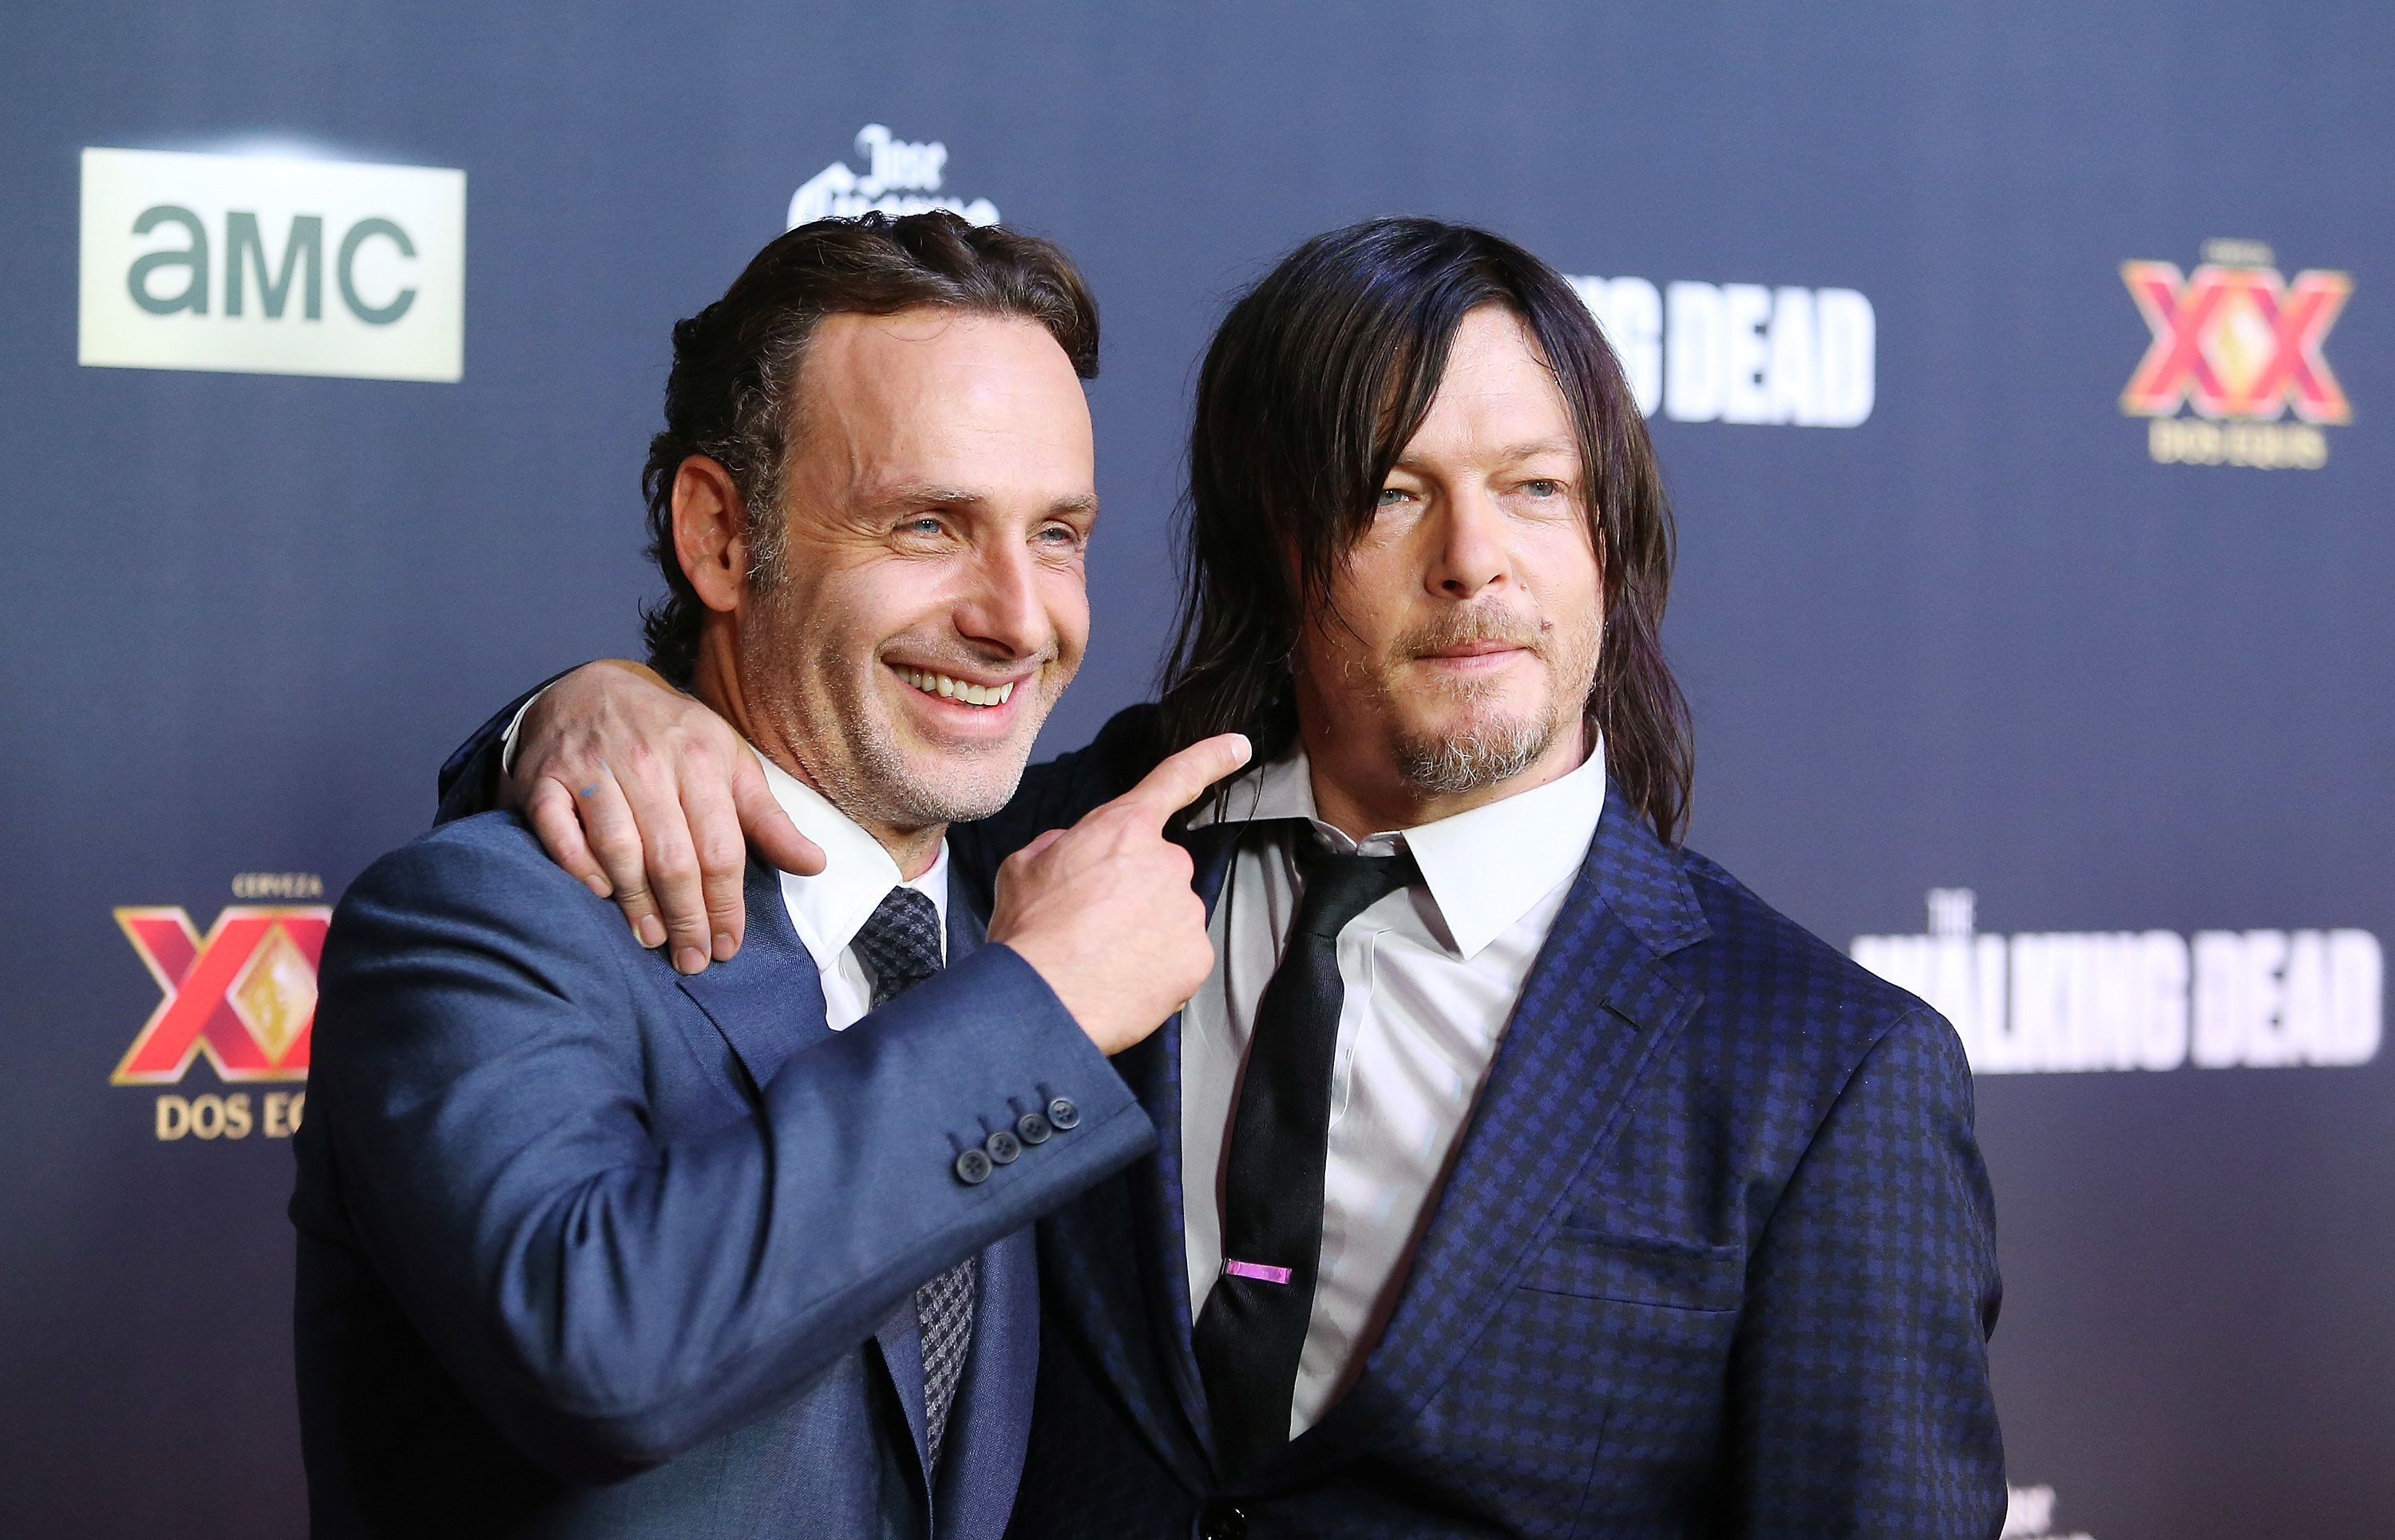 UNIVERSAL CITY, CA - OCTOBER 02:   Andrew Lincoln (L) and Norman Reedus arrive at AMC's 'The Walking Dead' Season 5 Premiere held at AMC Universal City Walk on October 2, 2014 in Universal City, California.  (Photo by Michael Tran/FilmMagic)